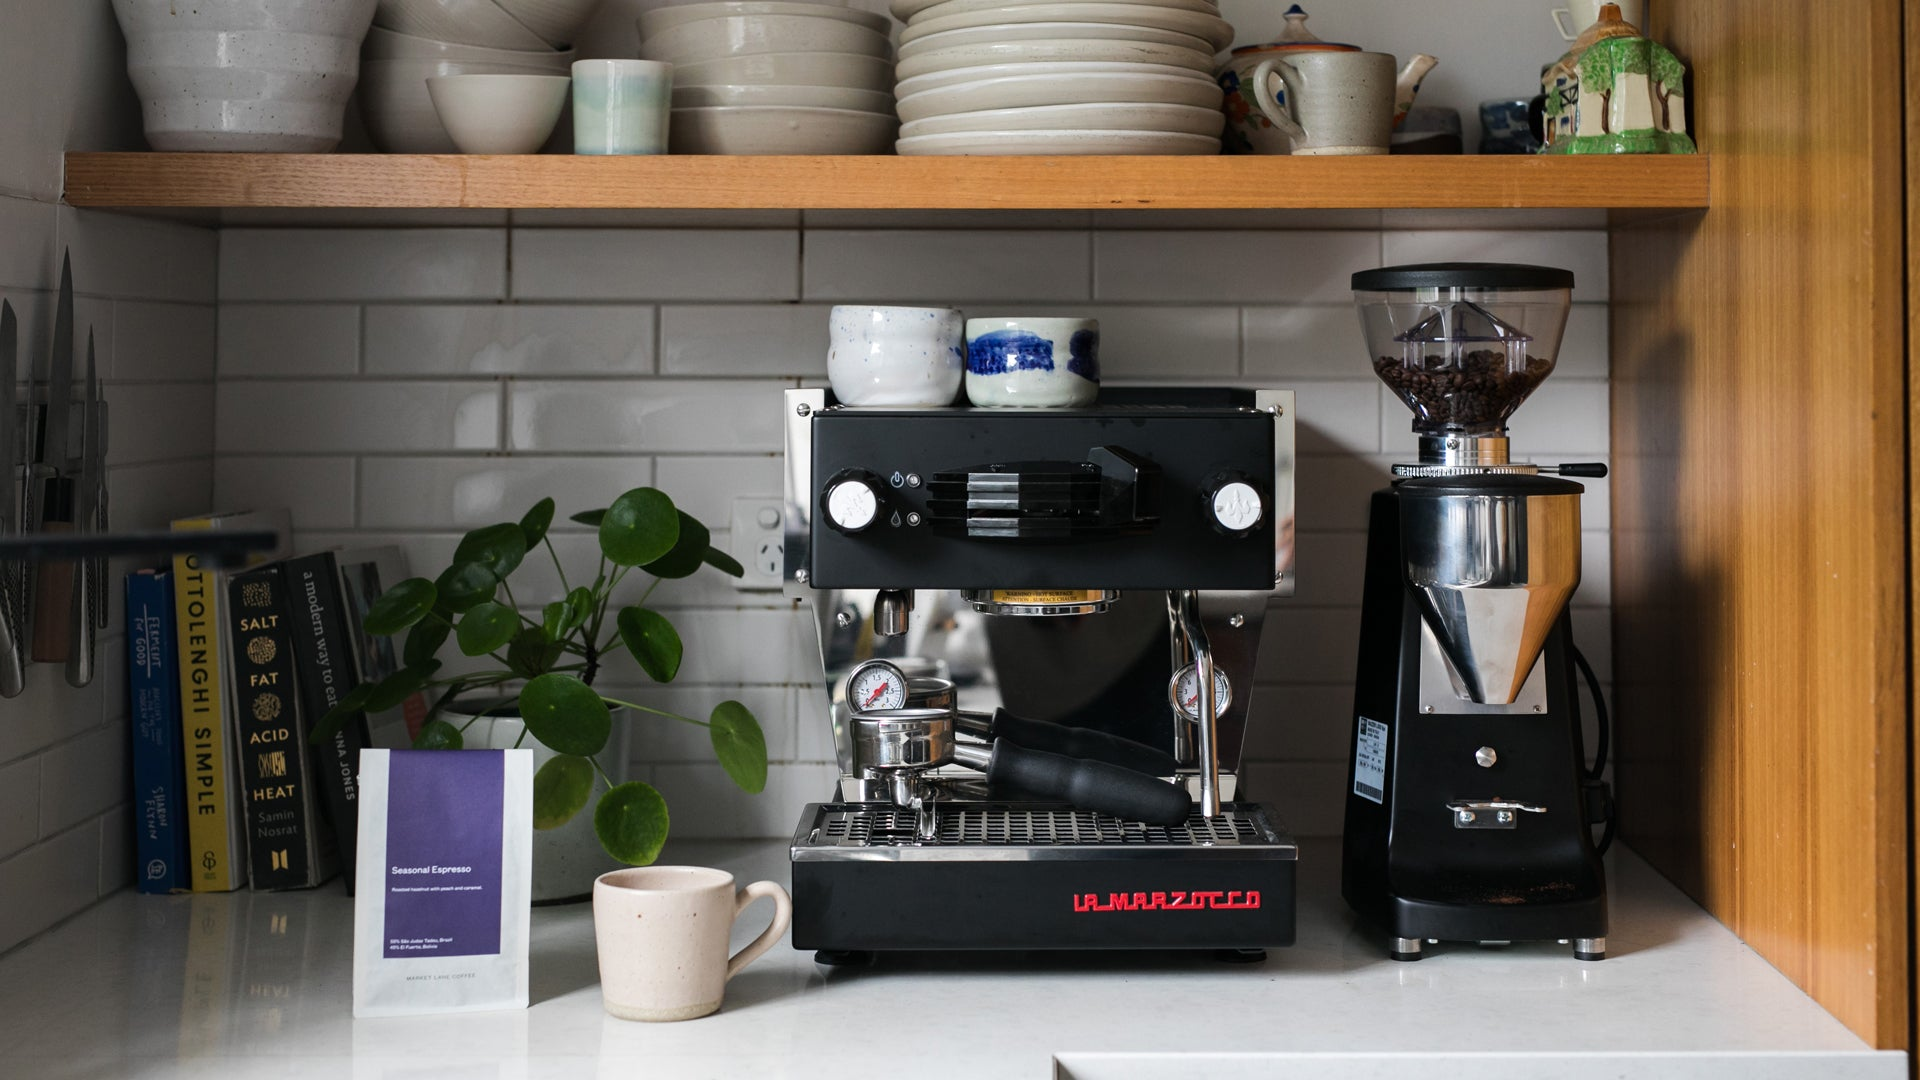 Espresso, espresso machine, mug and coffee beans - a few of the items needed to make great espresso coffee at home using our guide on how to make espresso.